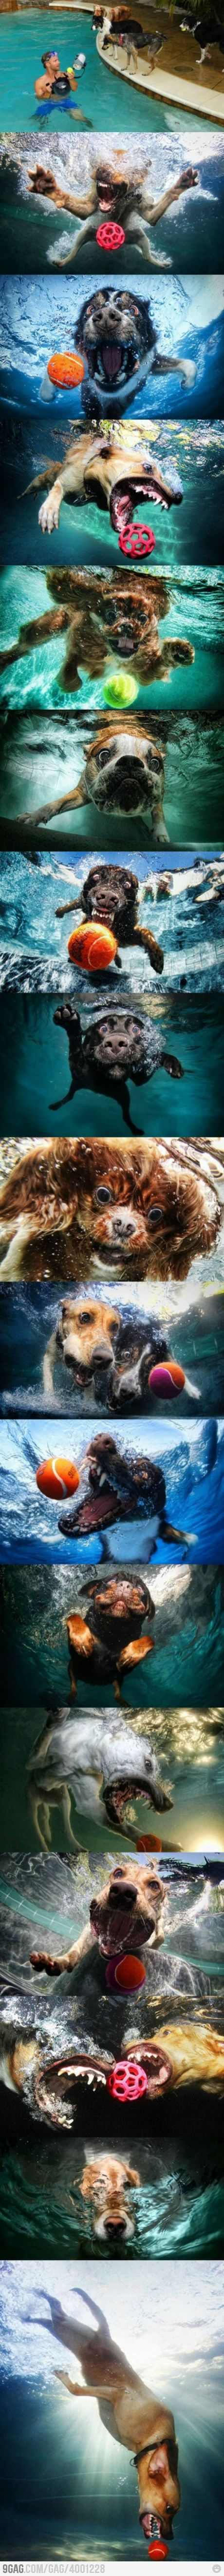 these pictures are so funny: Dogs Pics, Funny Dogs, Funny Pictures, Dogs Photography, Underwater Dogs, Dogs Pictures, So Funny, Pools, Dogs Faces